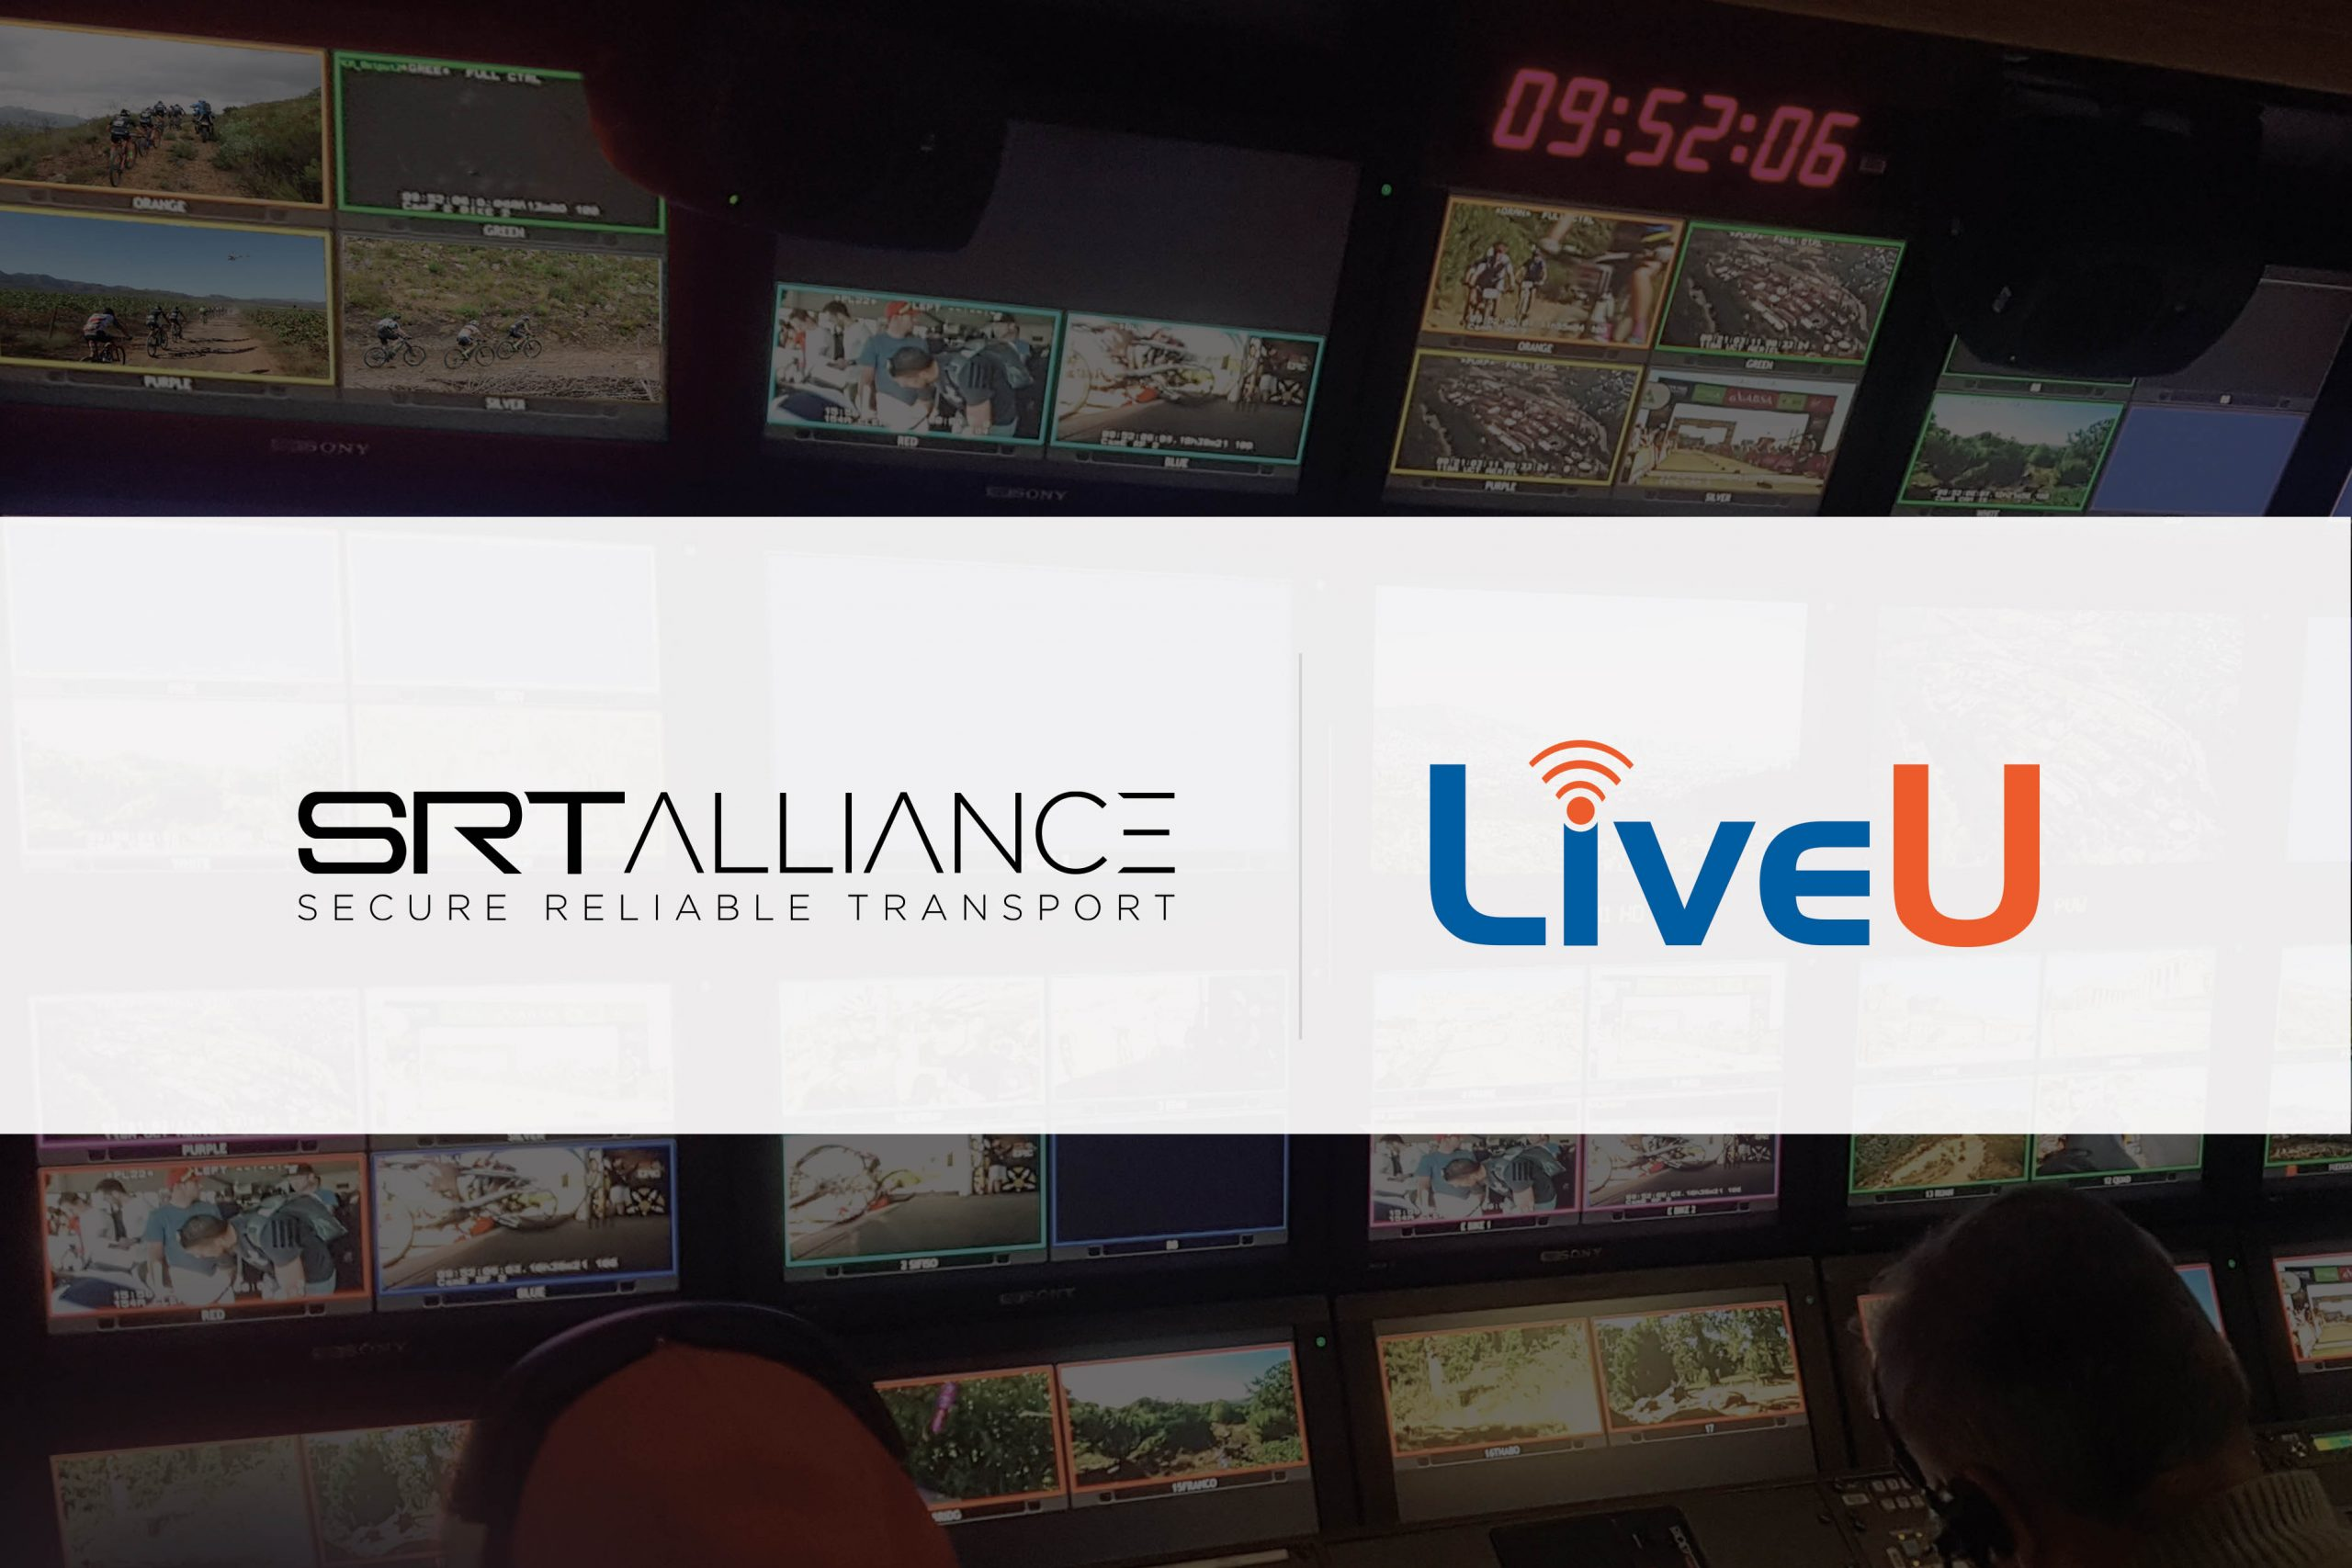 LiveU joins SRT Alliance to further interoperability for high-quality, low-latency video streaming over the internet